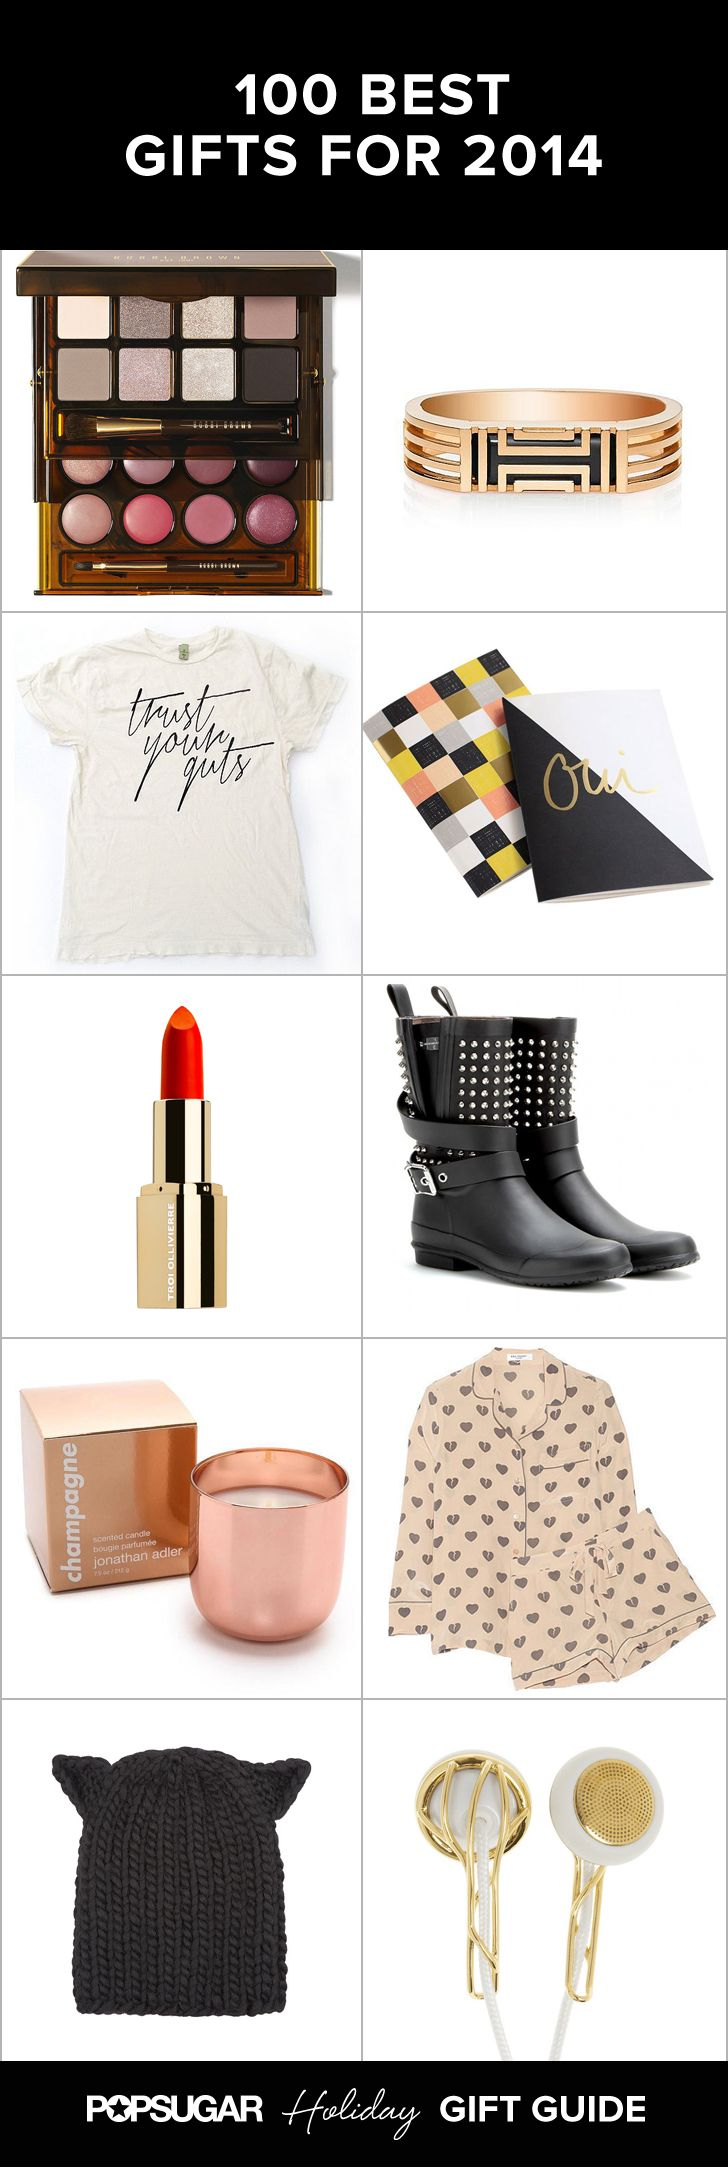 Shop 100 Last-Minute Gift Ideas!   Christmas gifts, Gift and Holidays